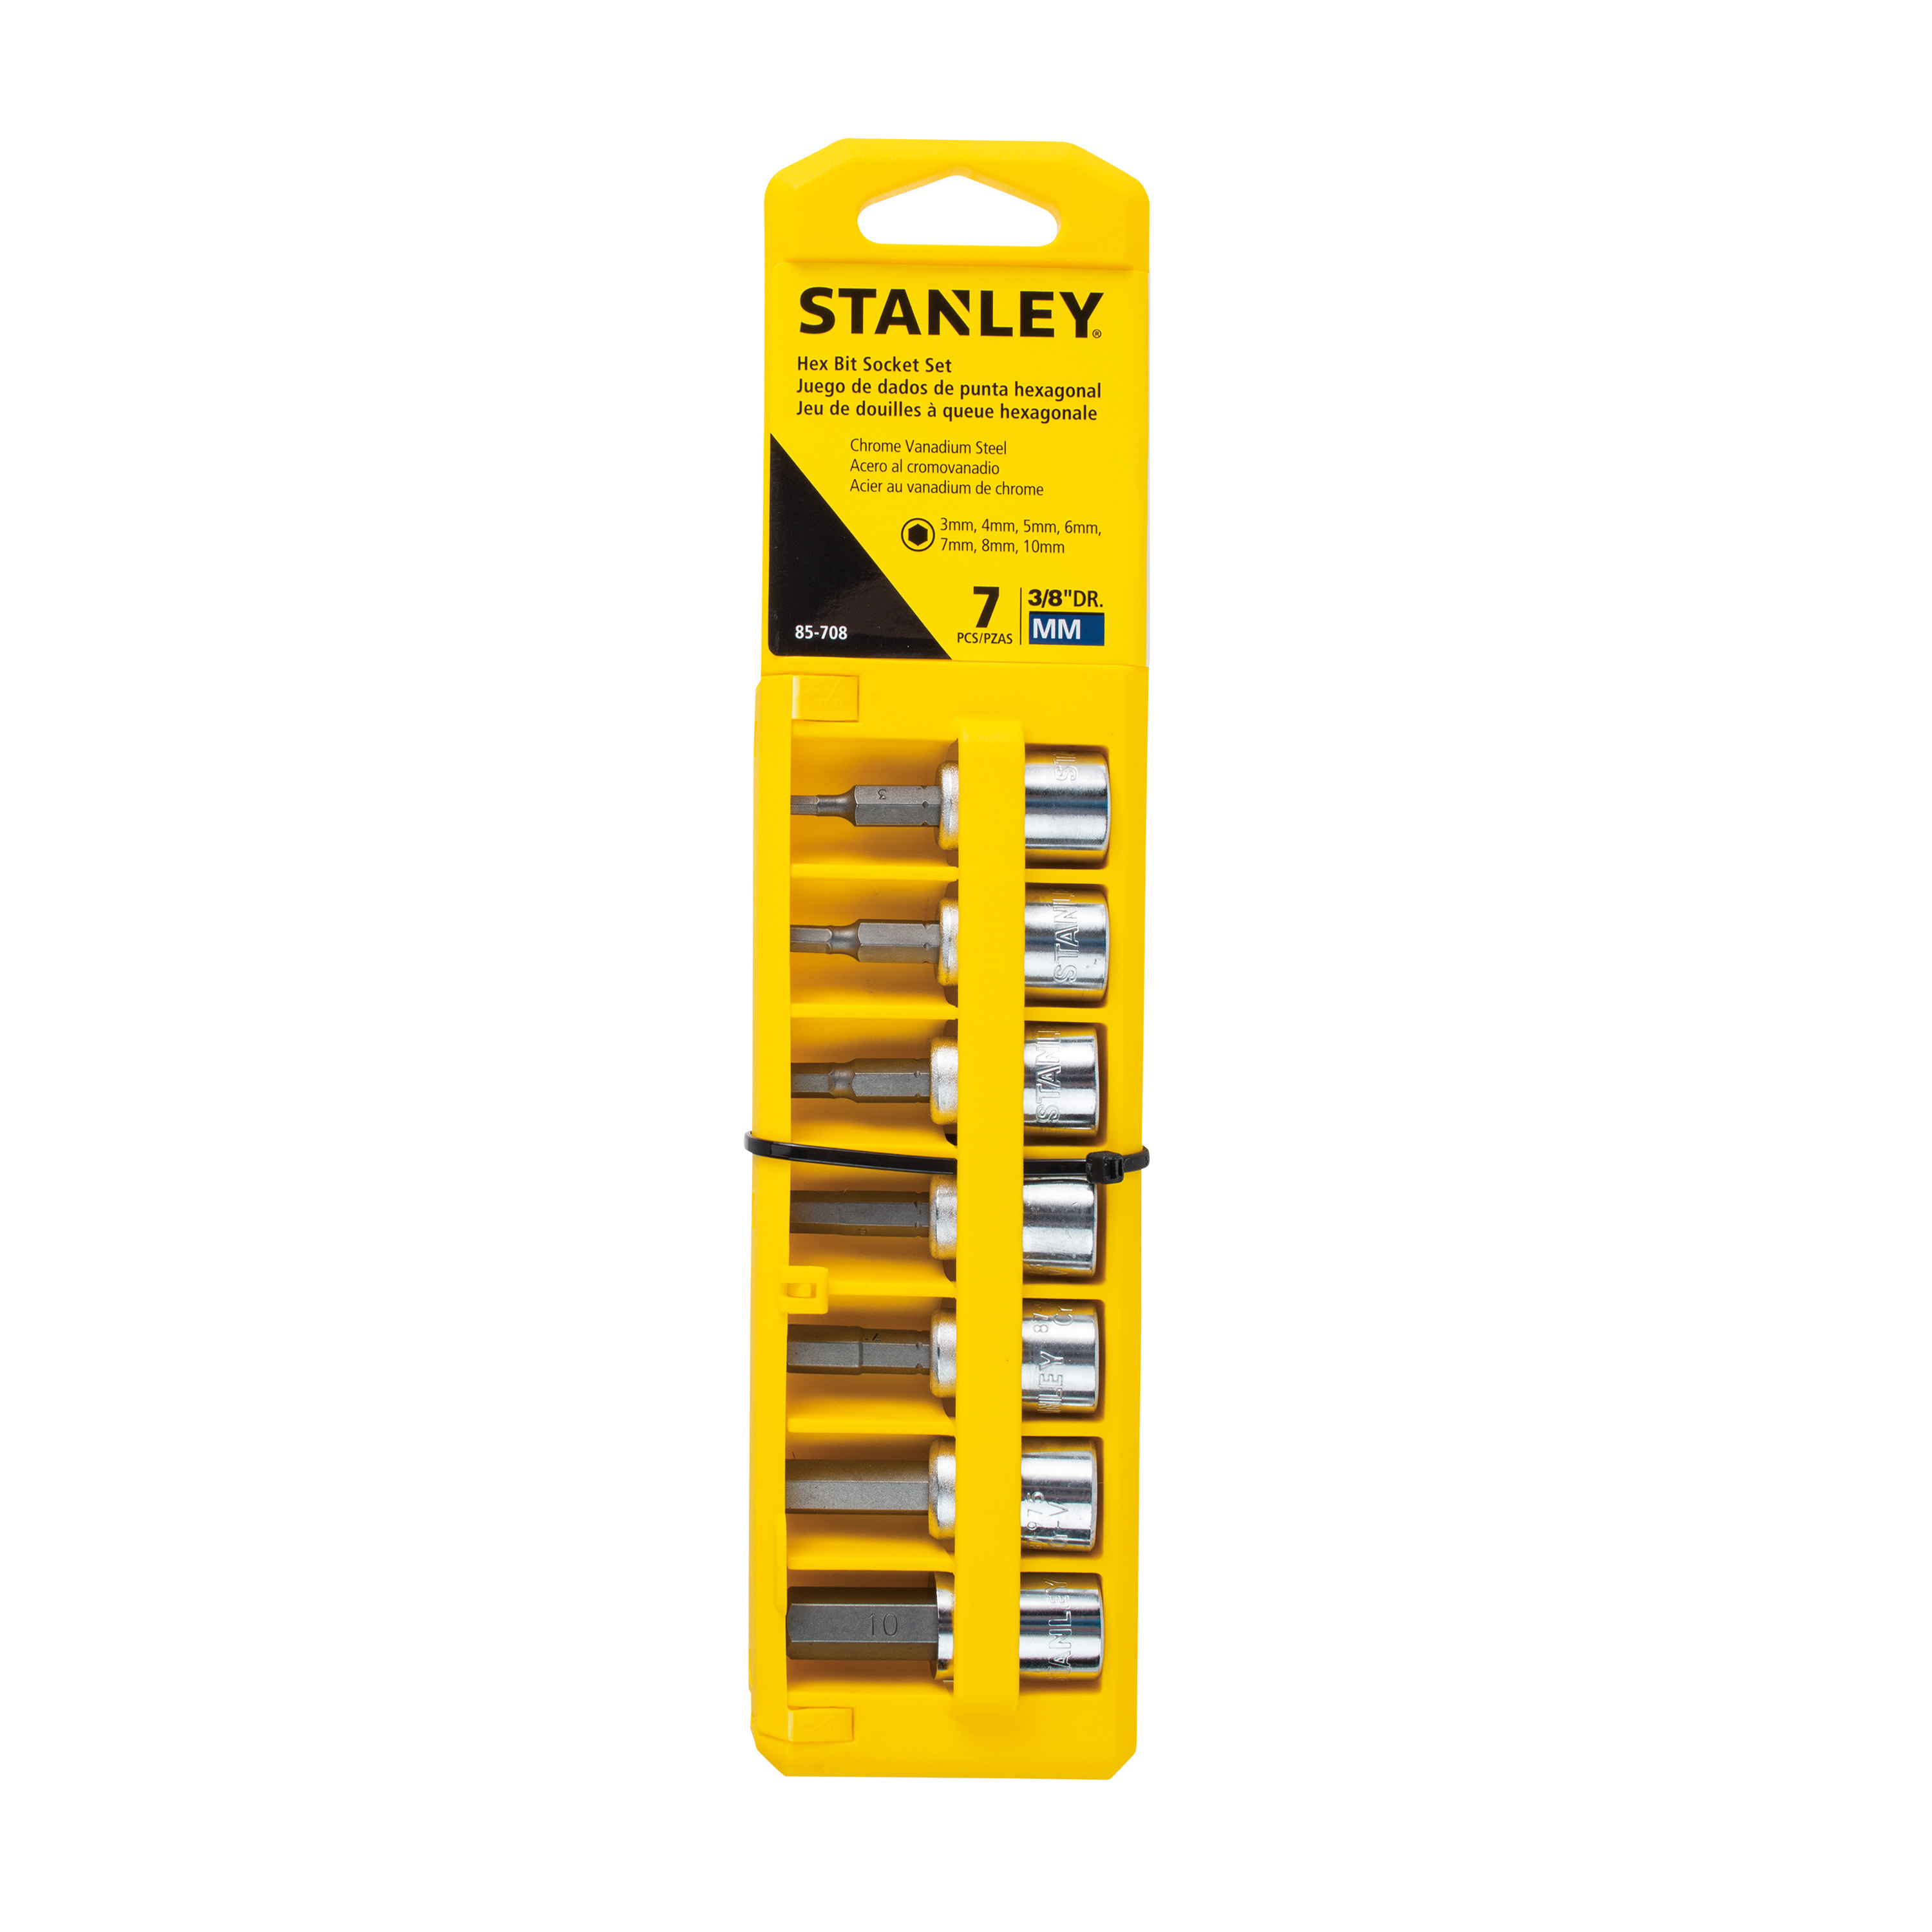 STANLEY 7 Piece 3/8'' Hex Socket Set, Metric | 85-708